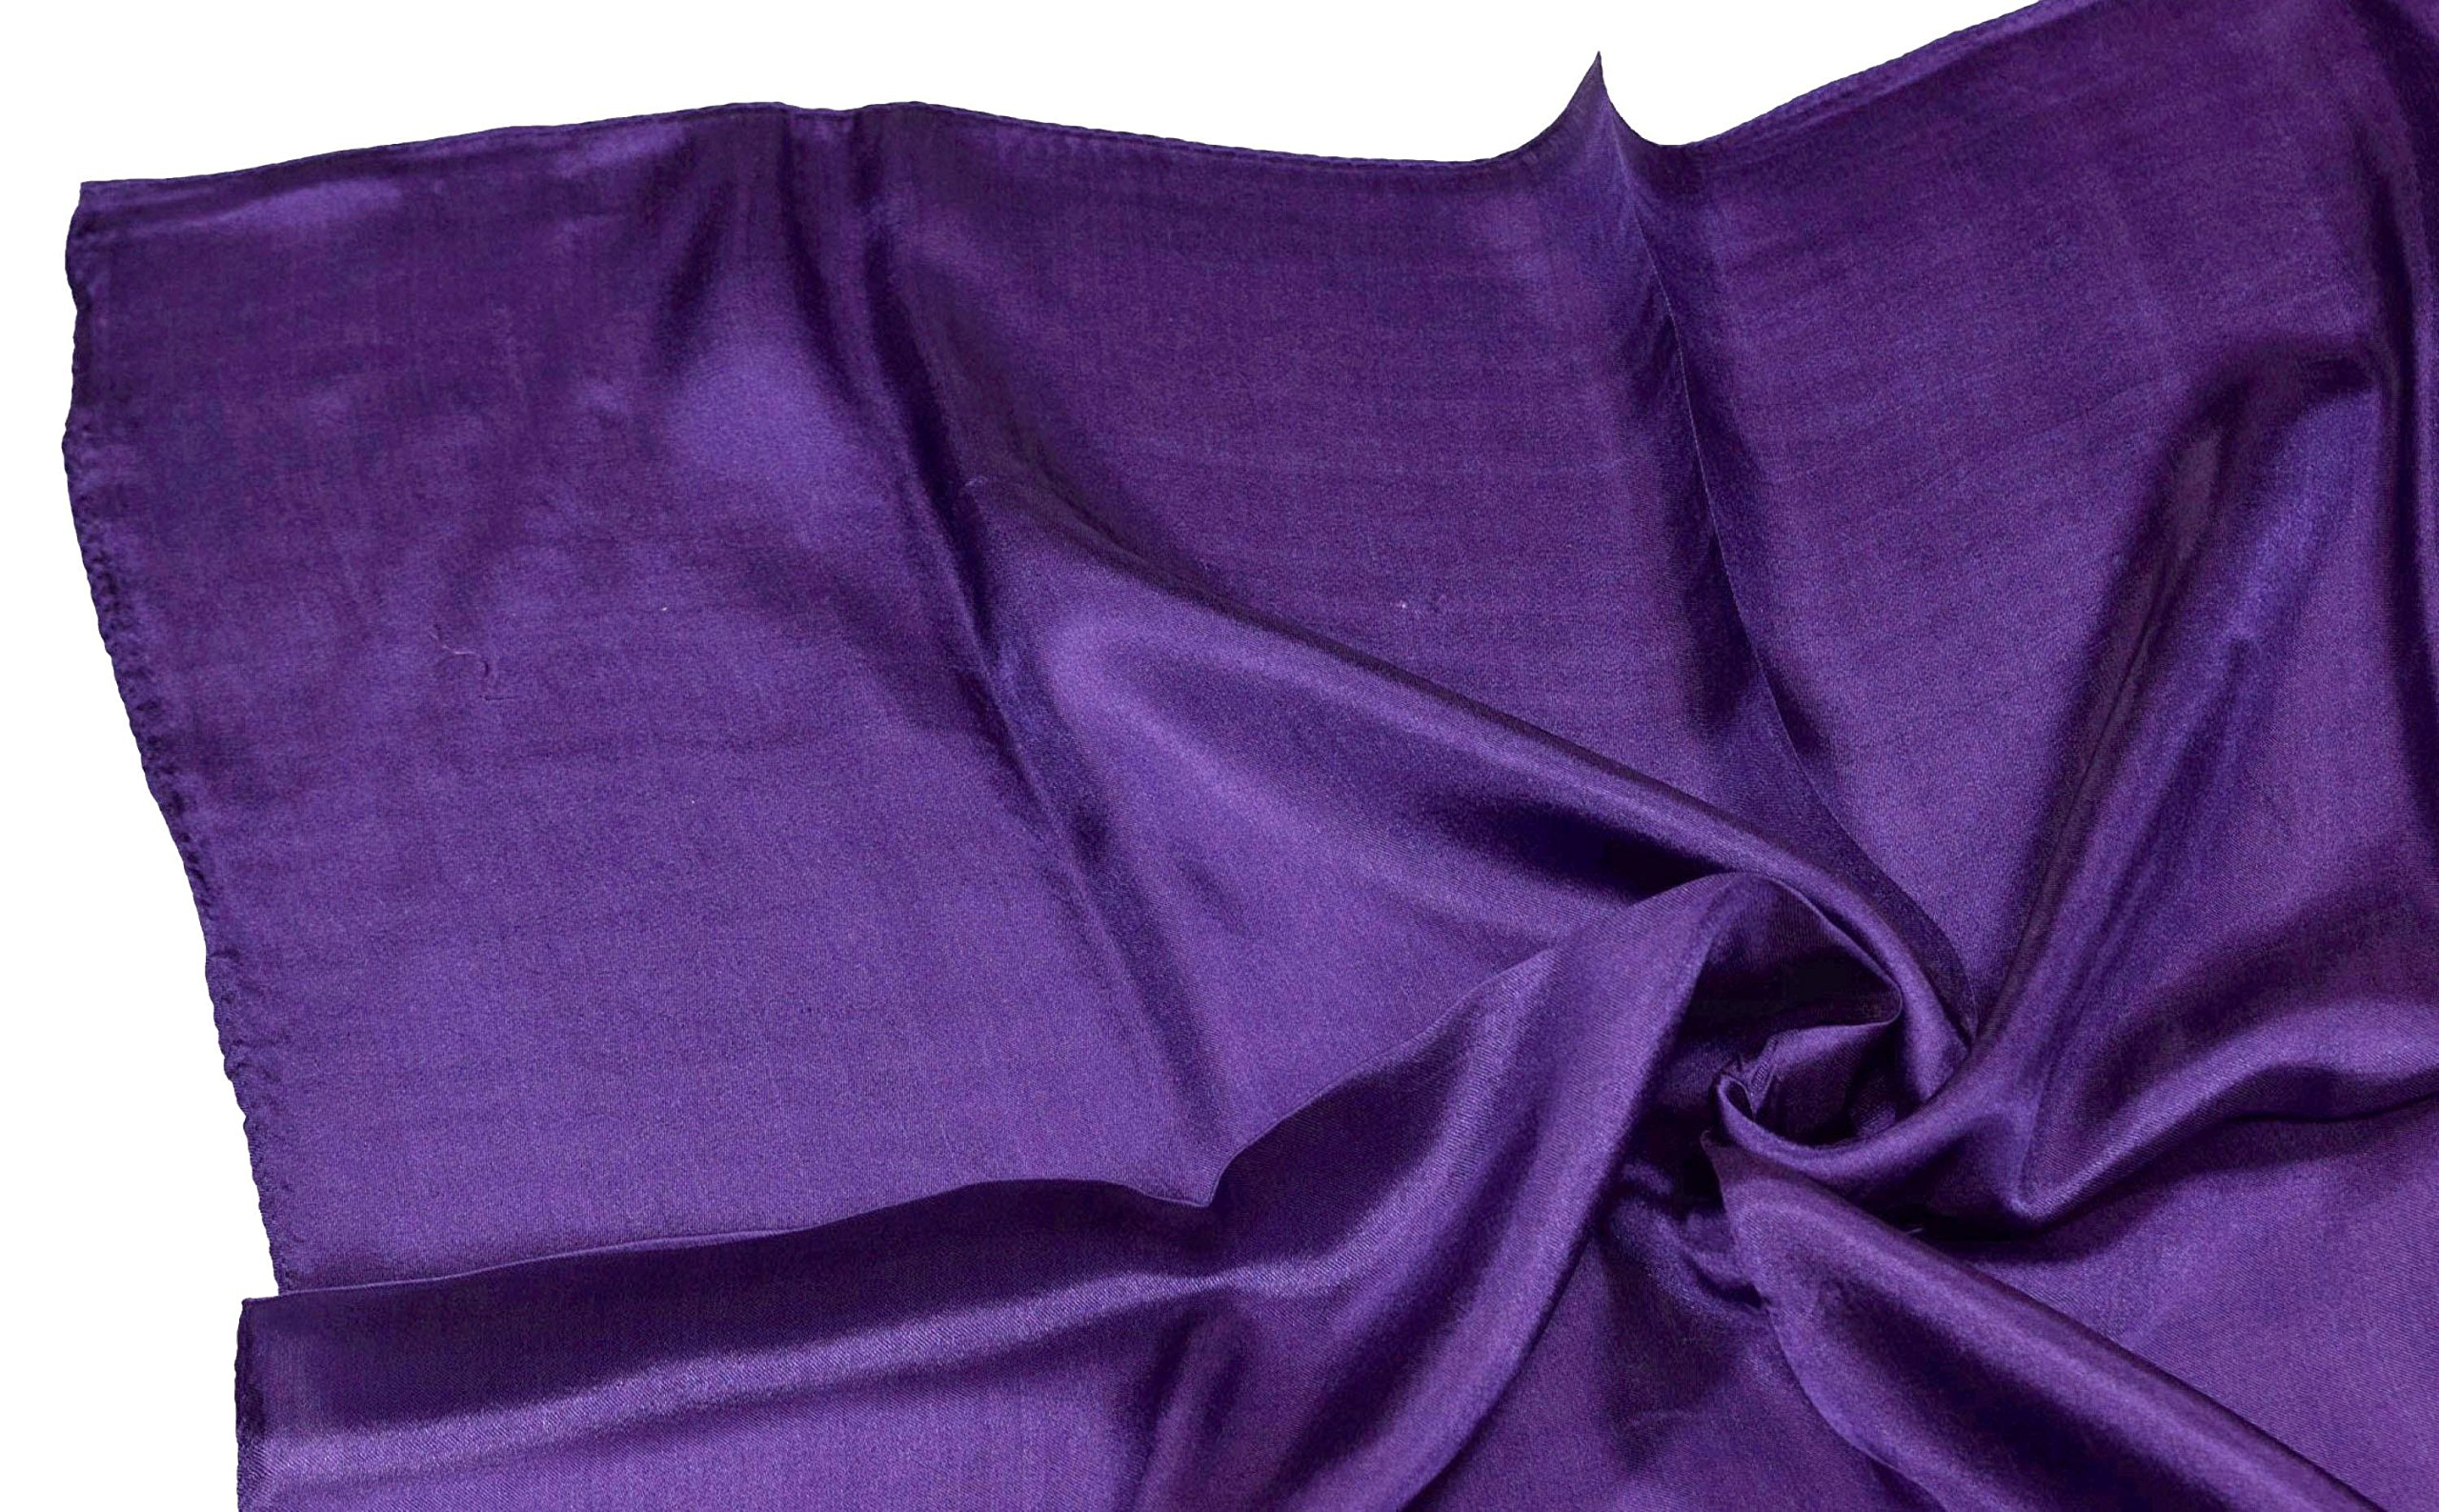 Deep Purple Small Fine Silk Square Scarf by Bees Knees Fashion (Image #6)